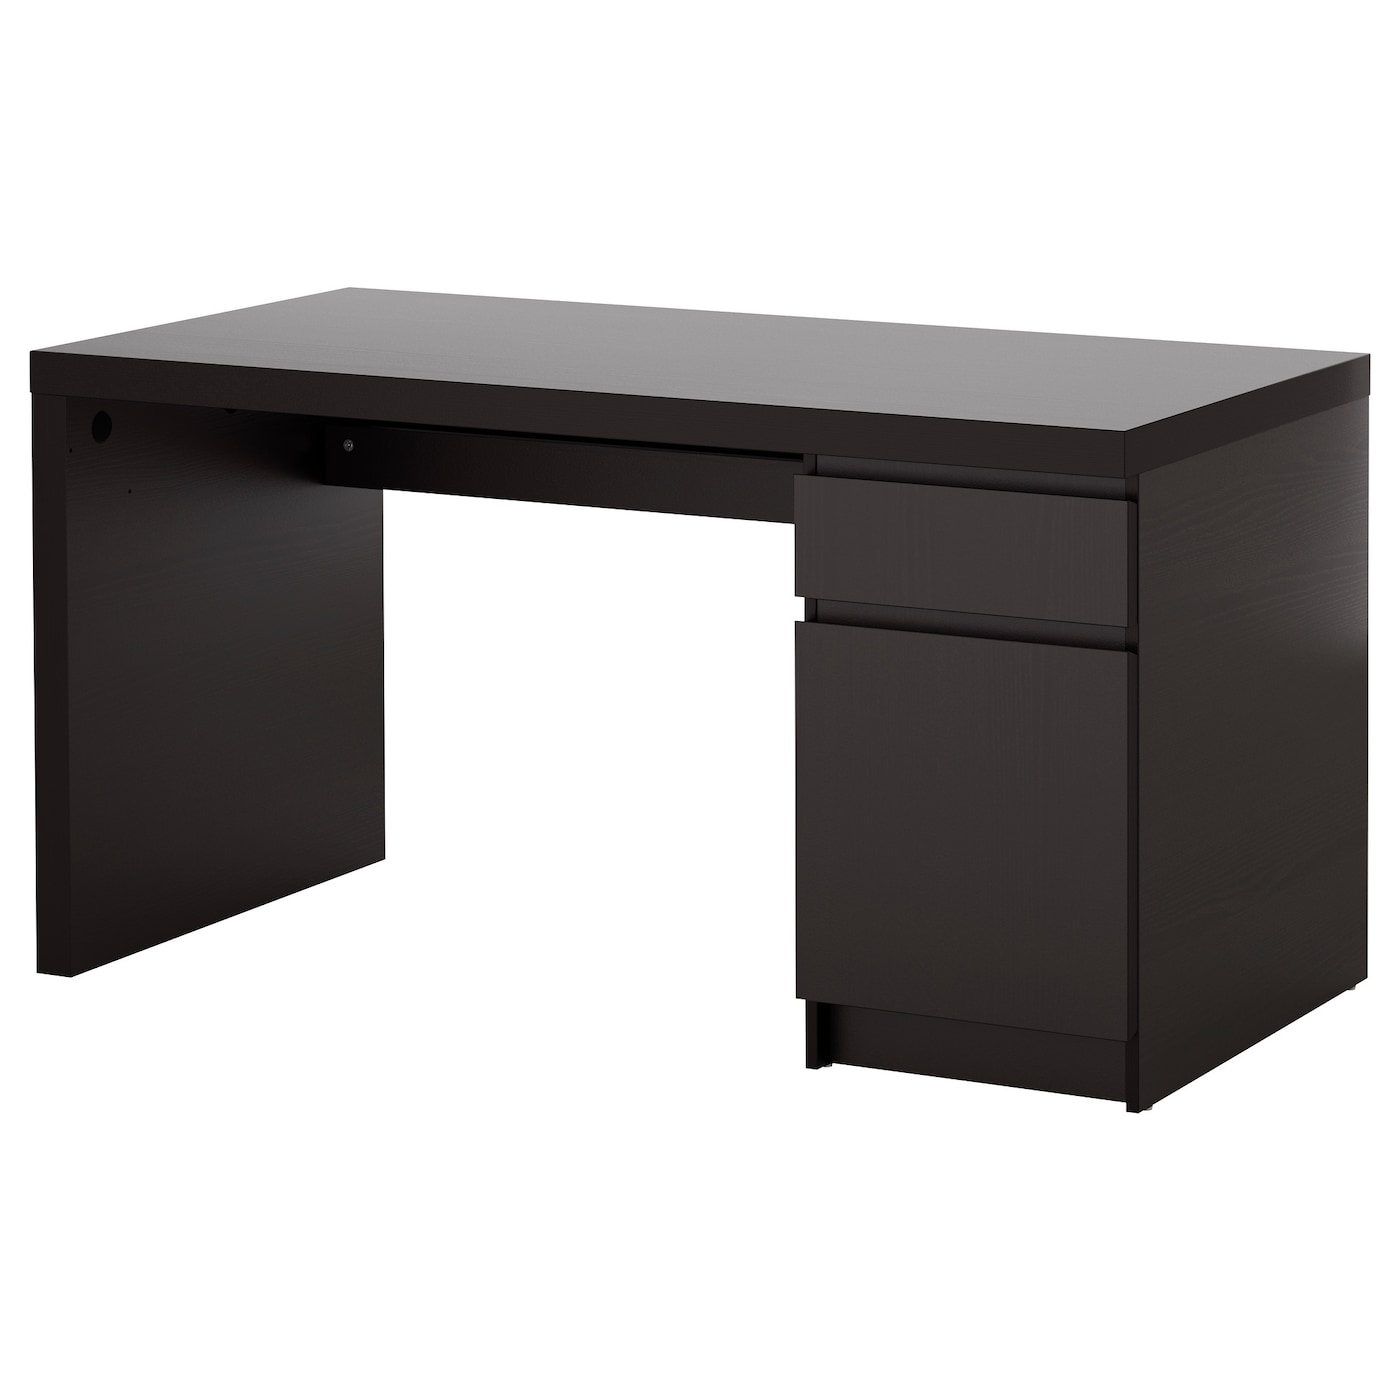 Malm desk black brown 140x65 cm ikea for Ikea drawing desk